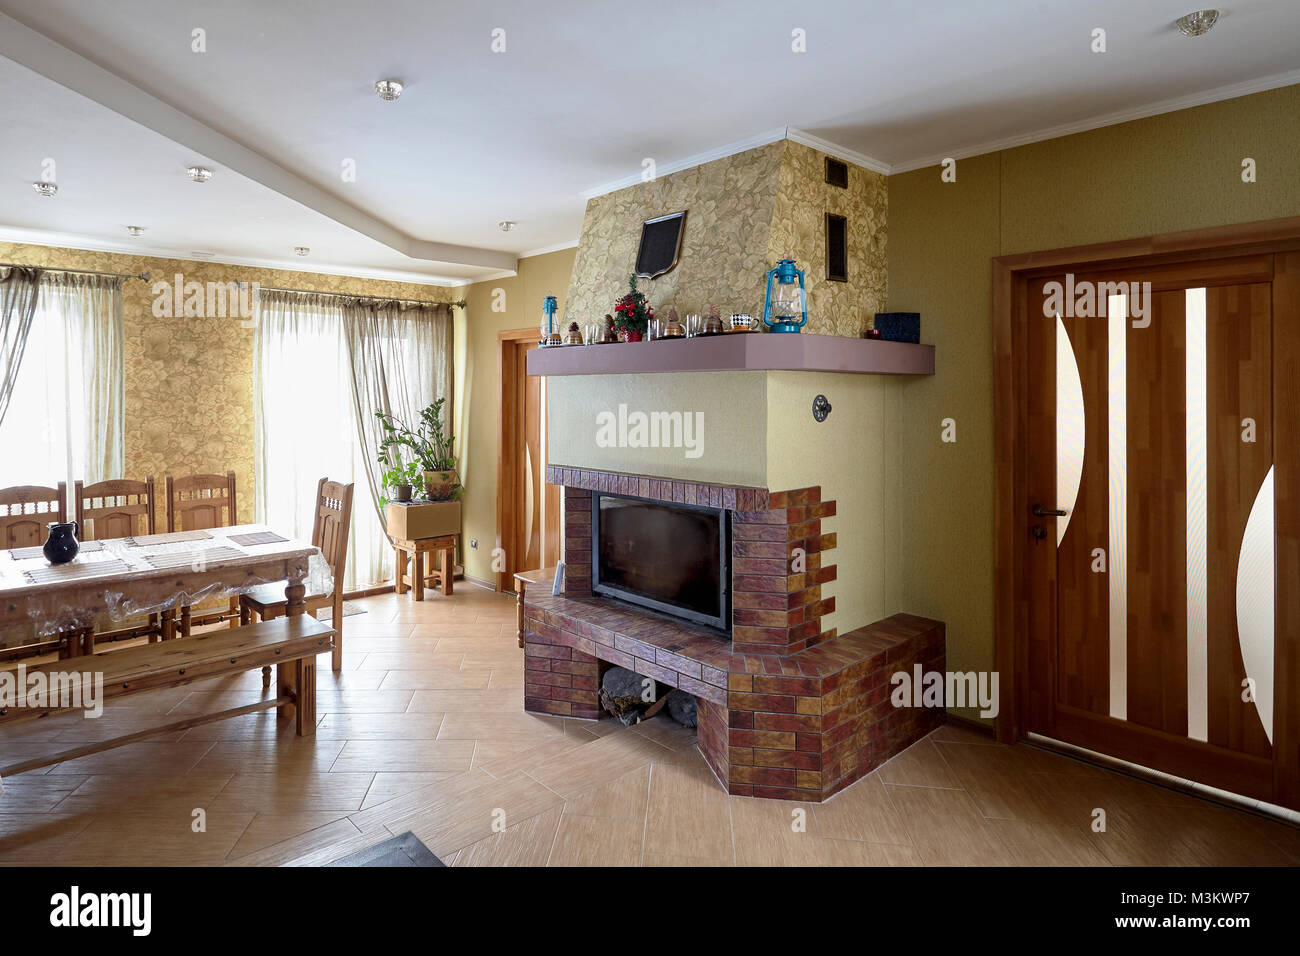 Fireplace and Table in Livingroom with Cups, Lamps and Christmas Tree on Mantelpiece - Stock Image